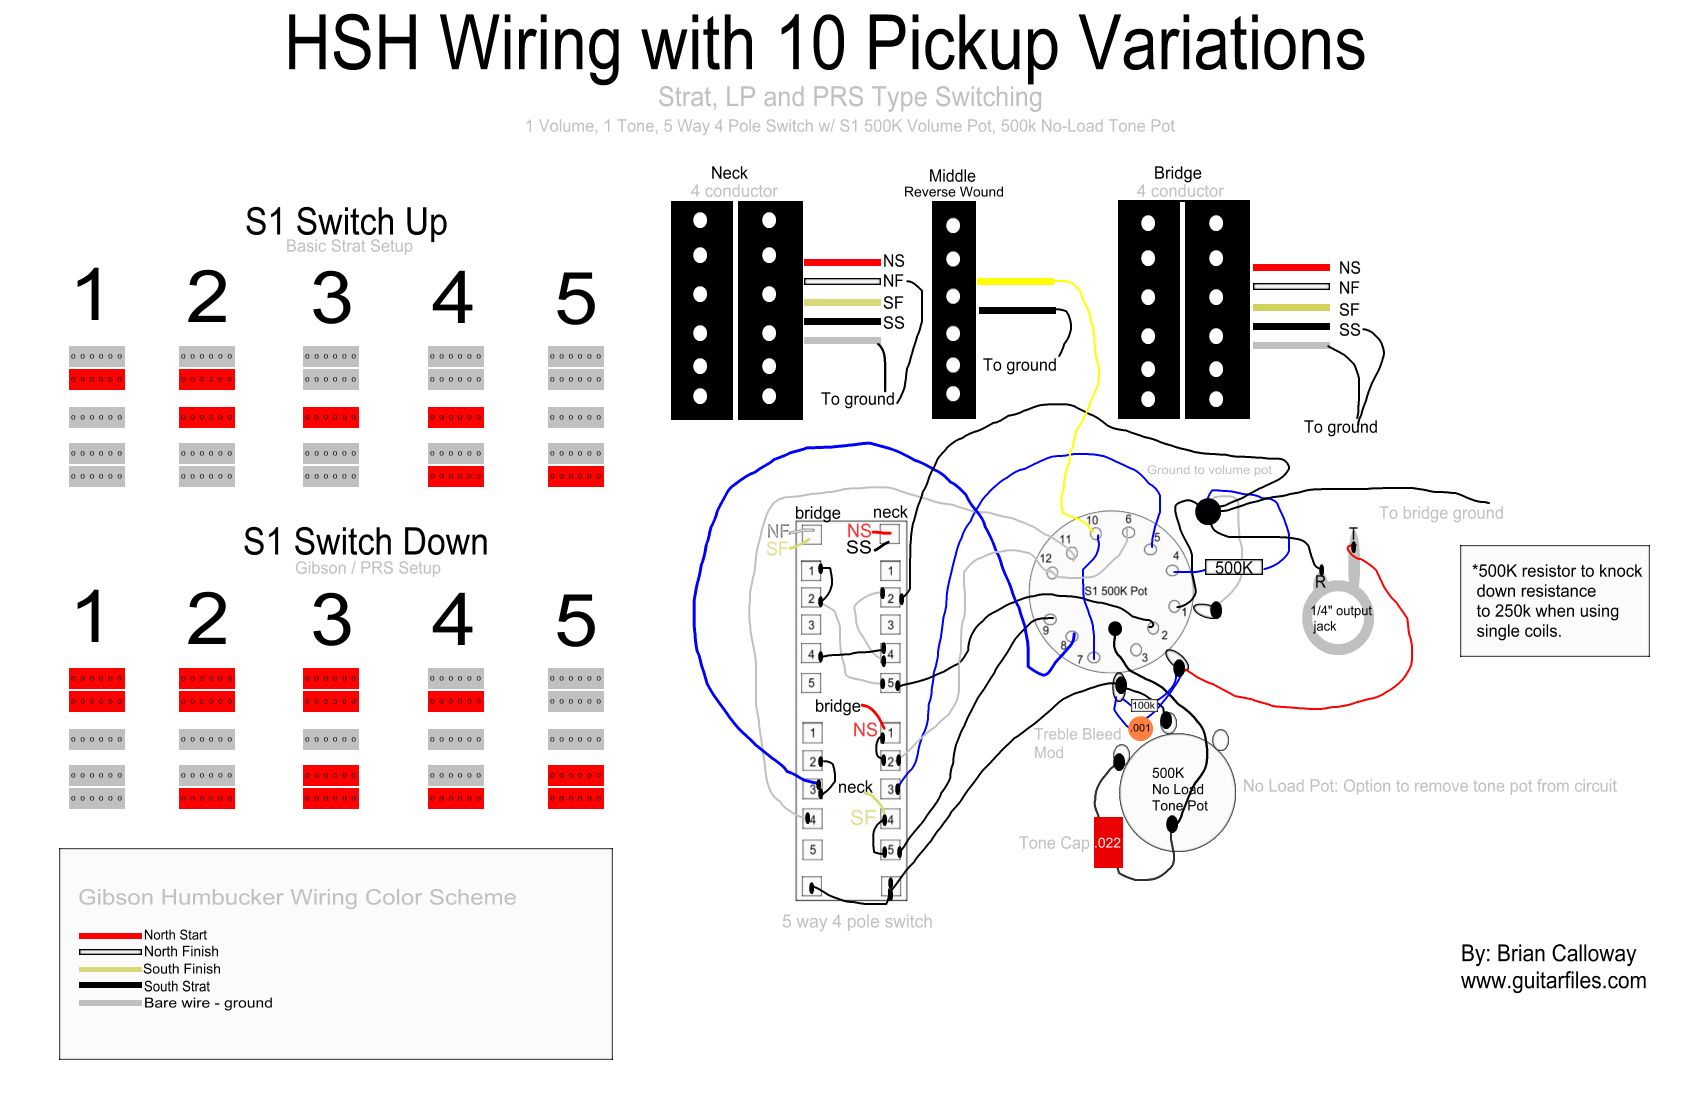 guitar wiring diagram 2 pickup 1 volume tone mains powered smoke alarm uk hsh 5 way elsavadorla